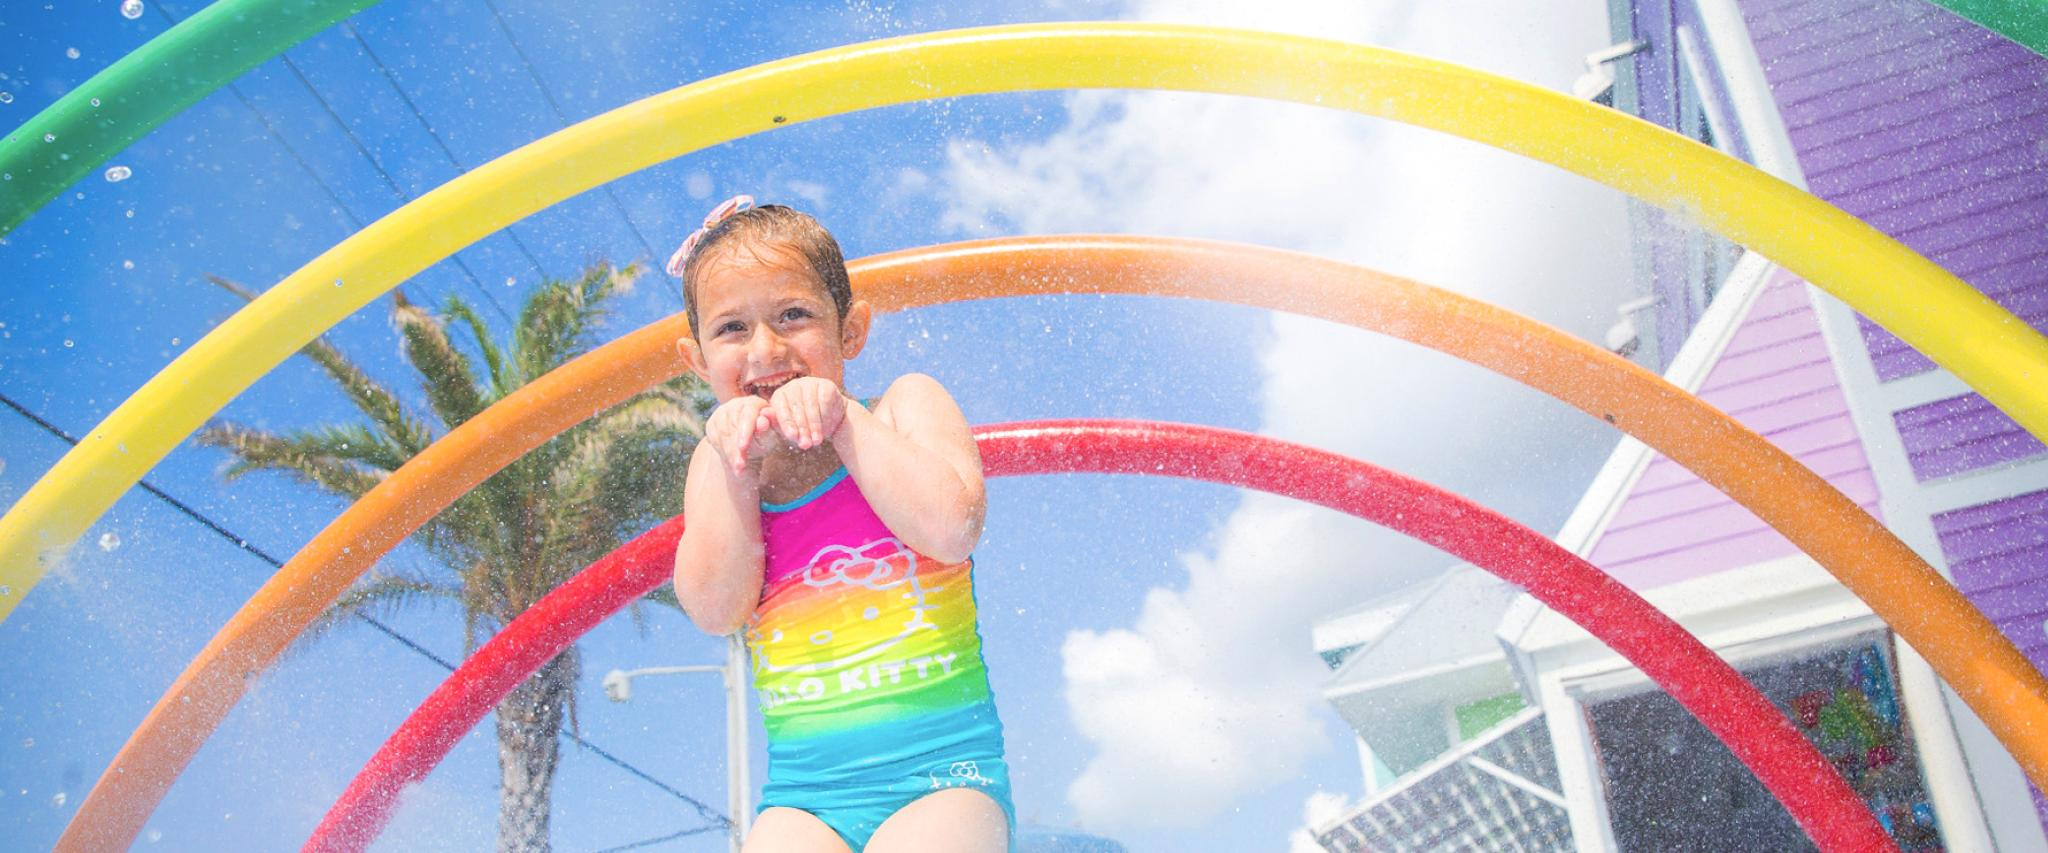 Girl plays at splash pad in Gulf Shores